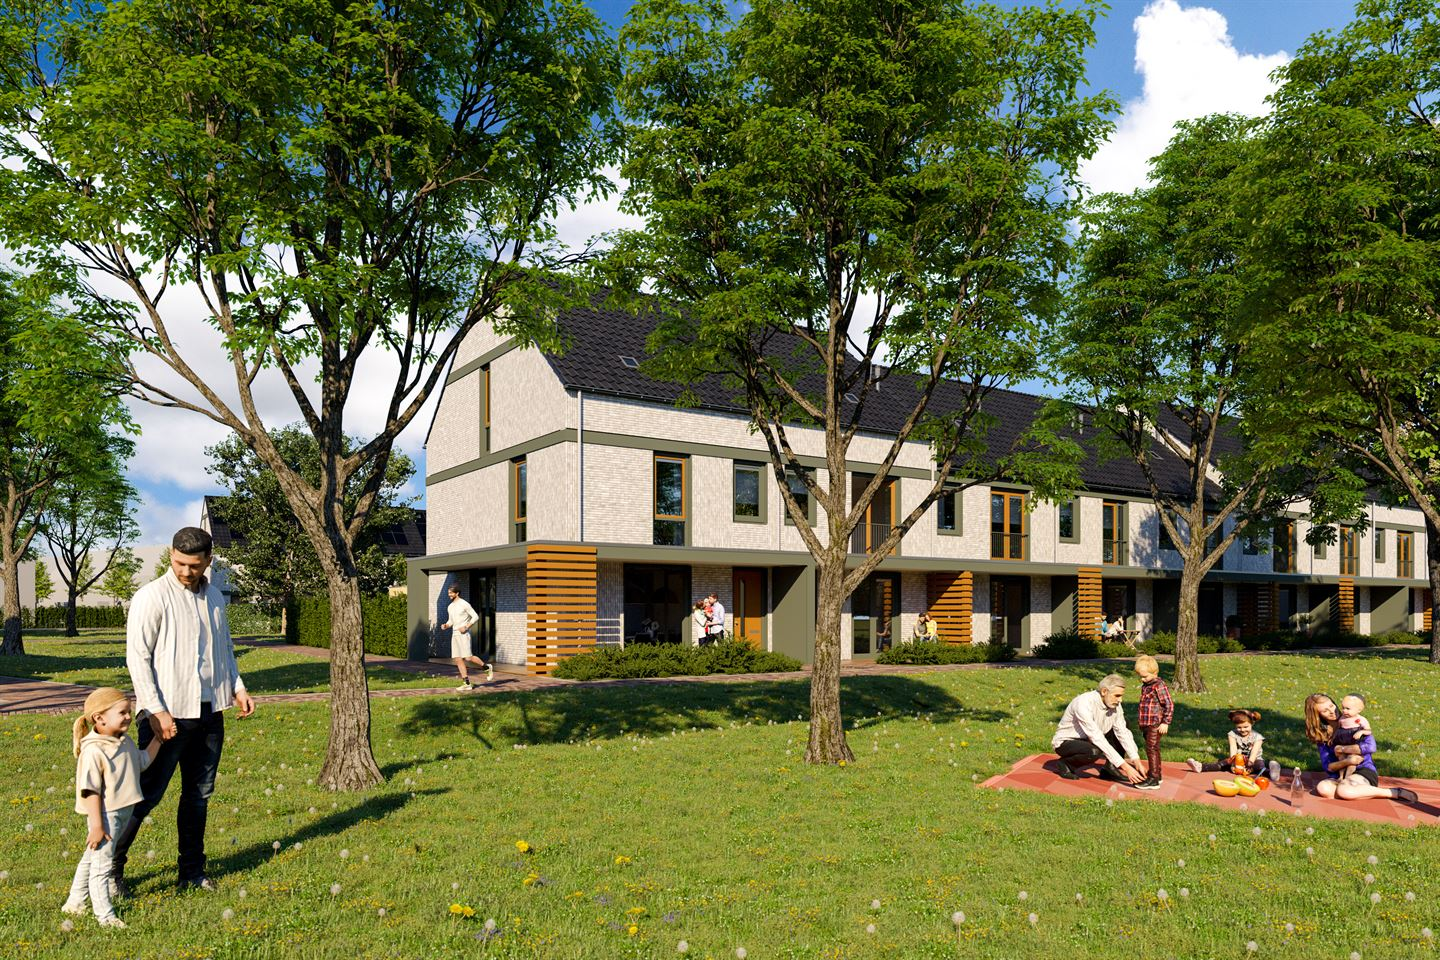 View photo 1 of Parkwoning XL type G (Bouwnr. 21)